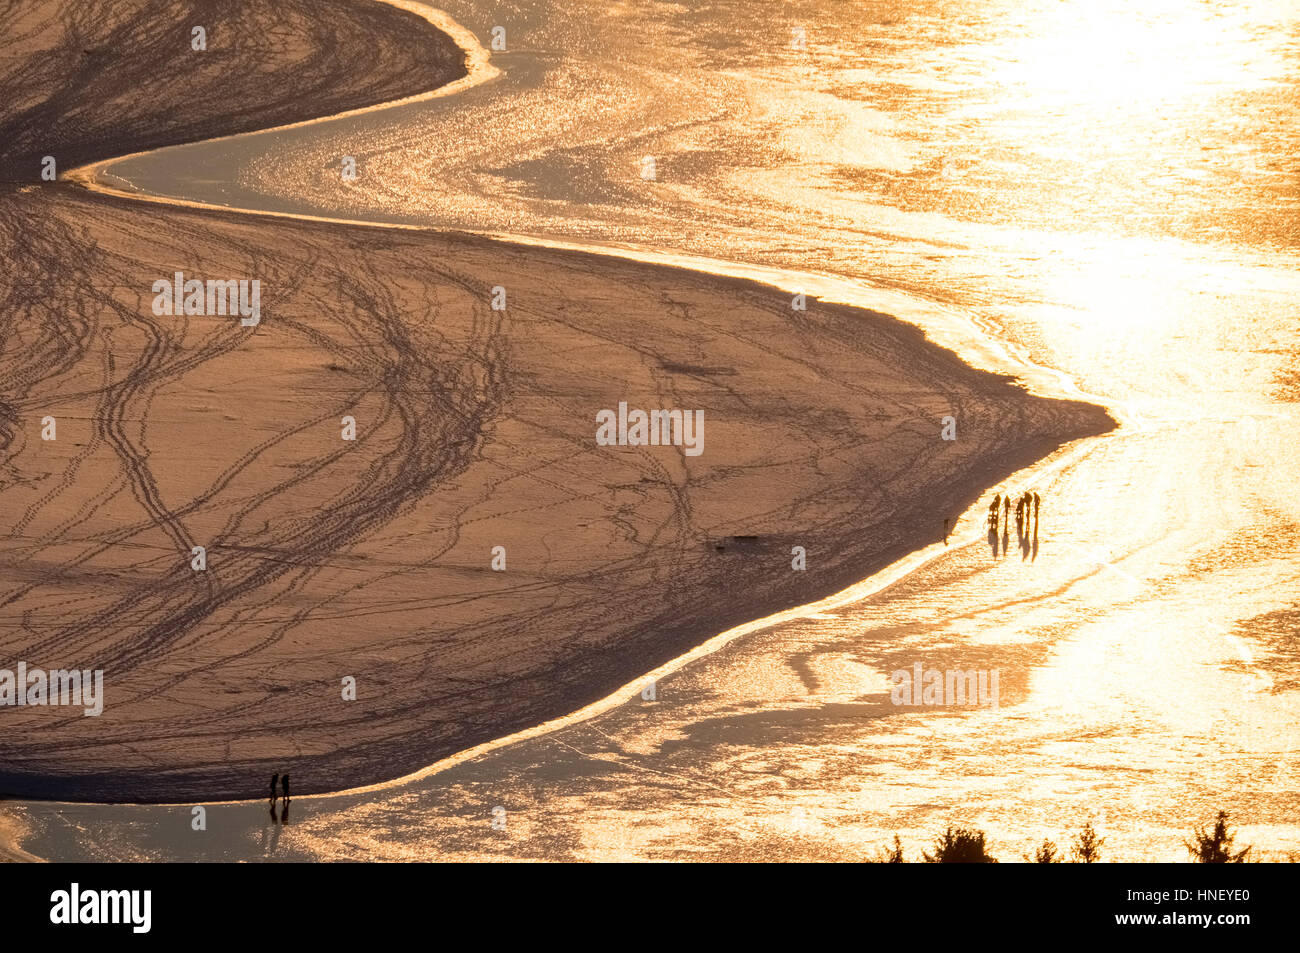 Golden evening mood, sandbar with ice on the southern shore, winter weather, low water at Möhnesee, Sauerland - Stock Image